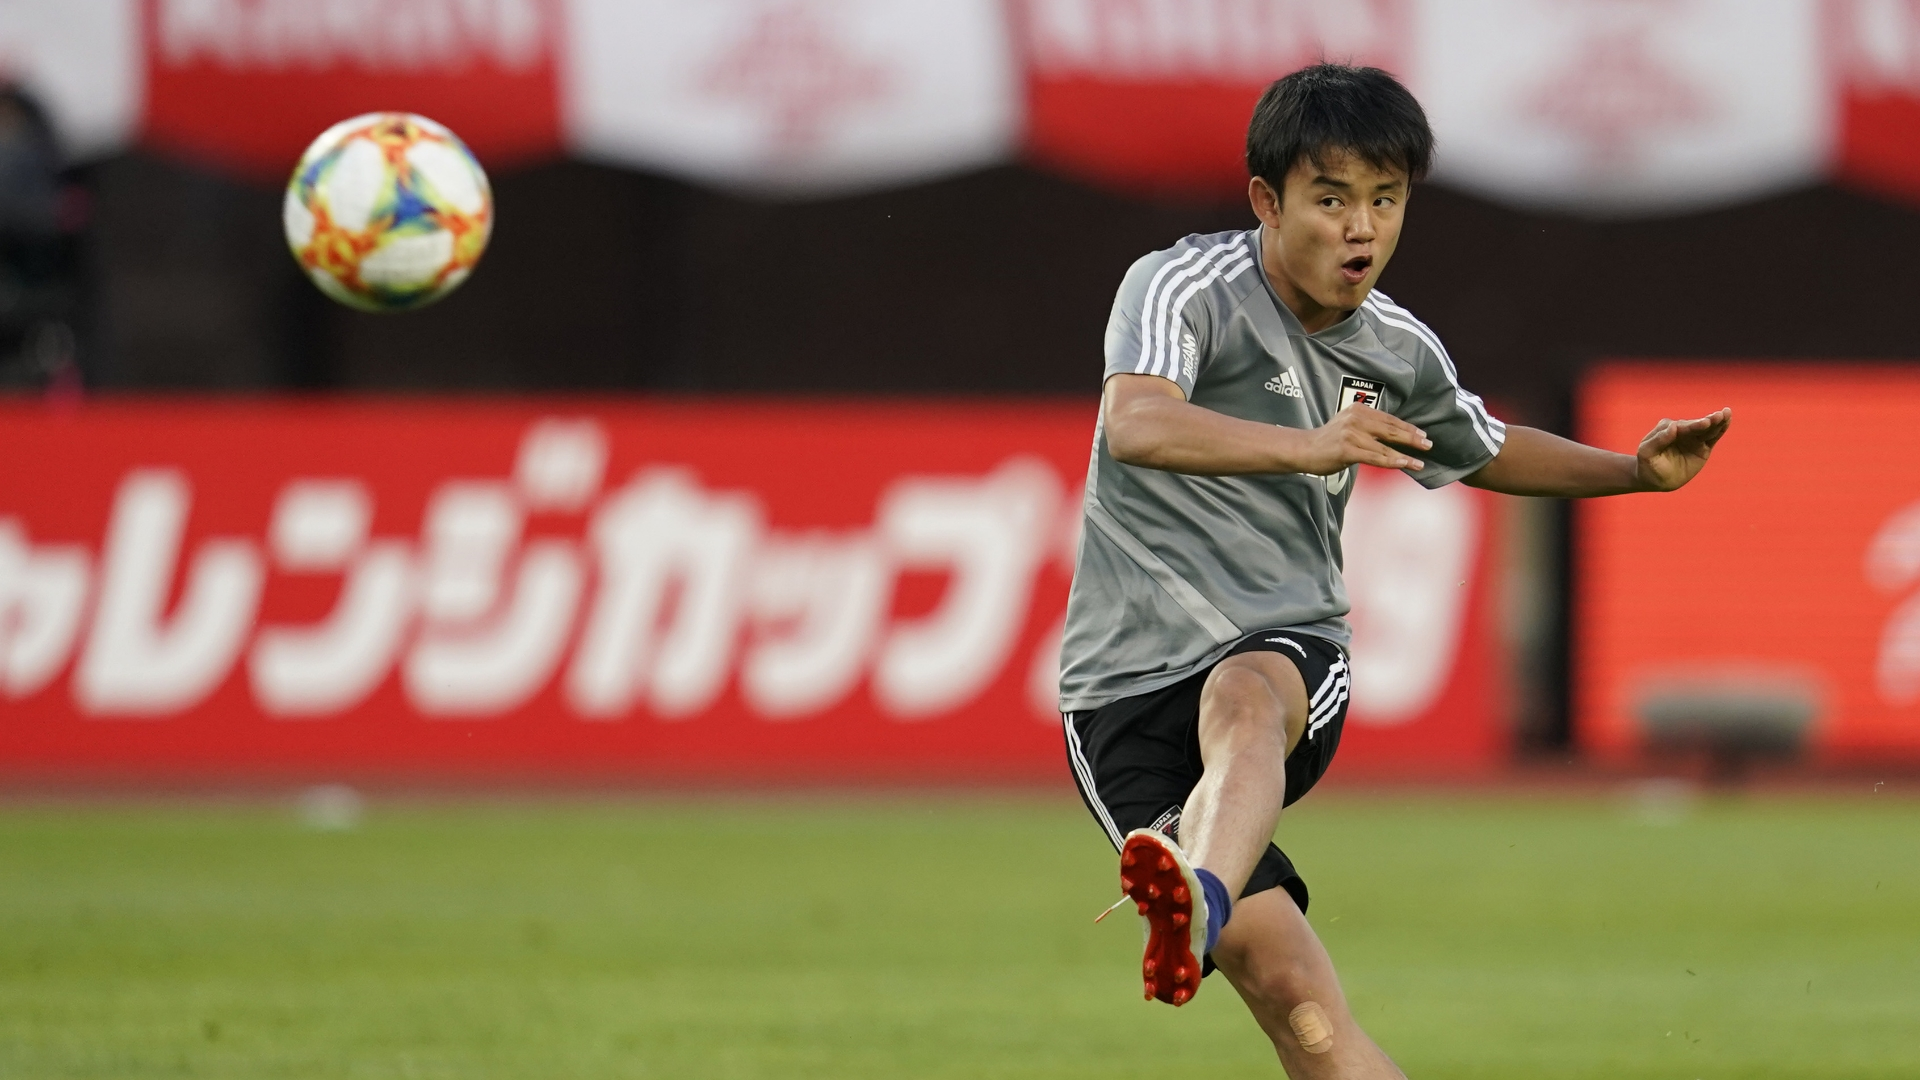 'Japanese Messi' Kubo set for Real Madrid move